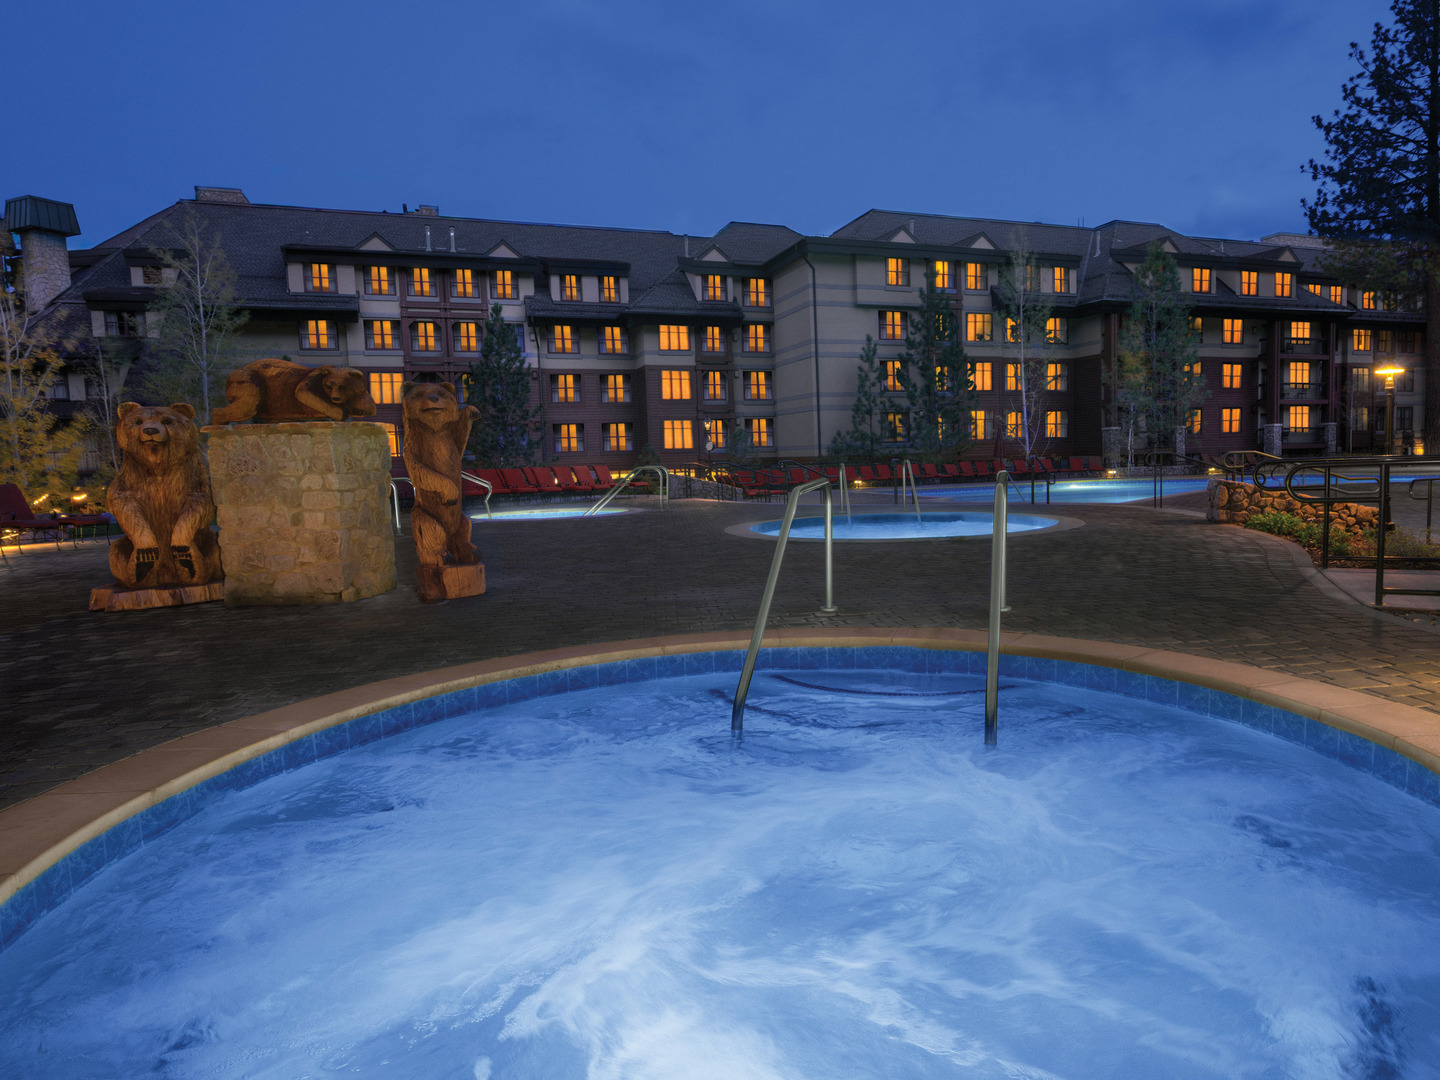 Marriott's Timber Lodge<span class='trademark'>®</span> Whirlpool Spa. Marriott's Timber Lodge<span class='trademark'>®</span> is located in South Lake Tahoe, California United States.